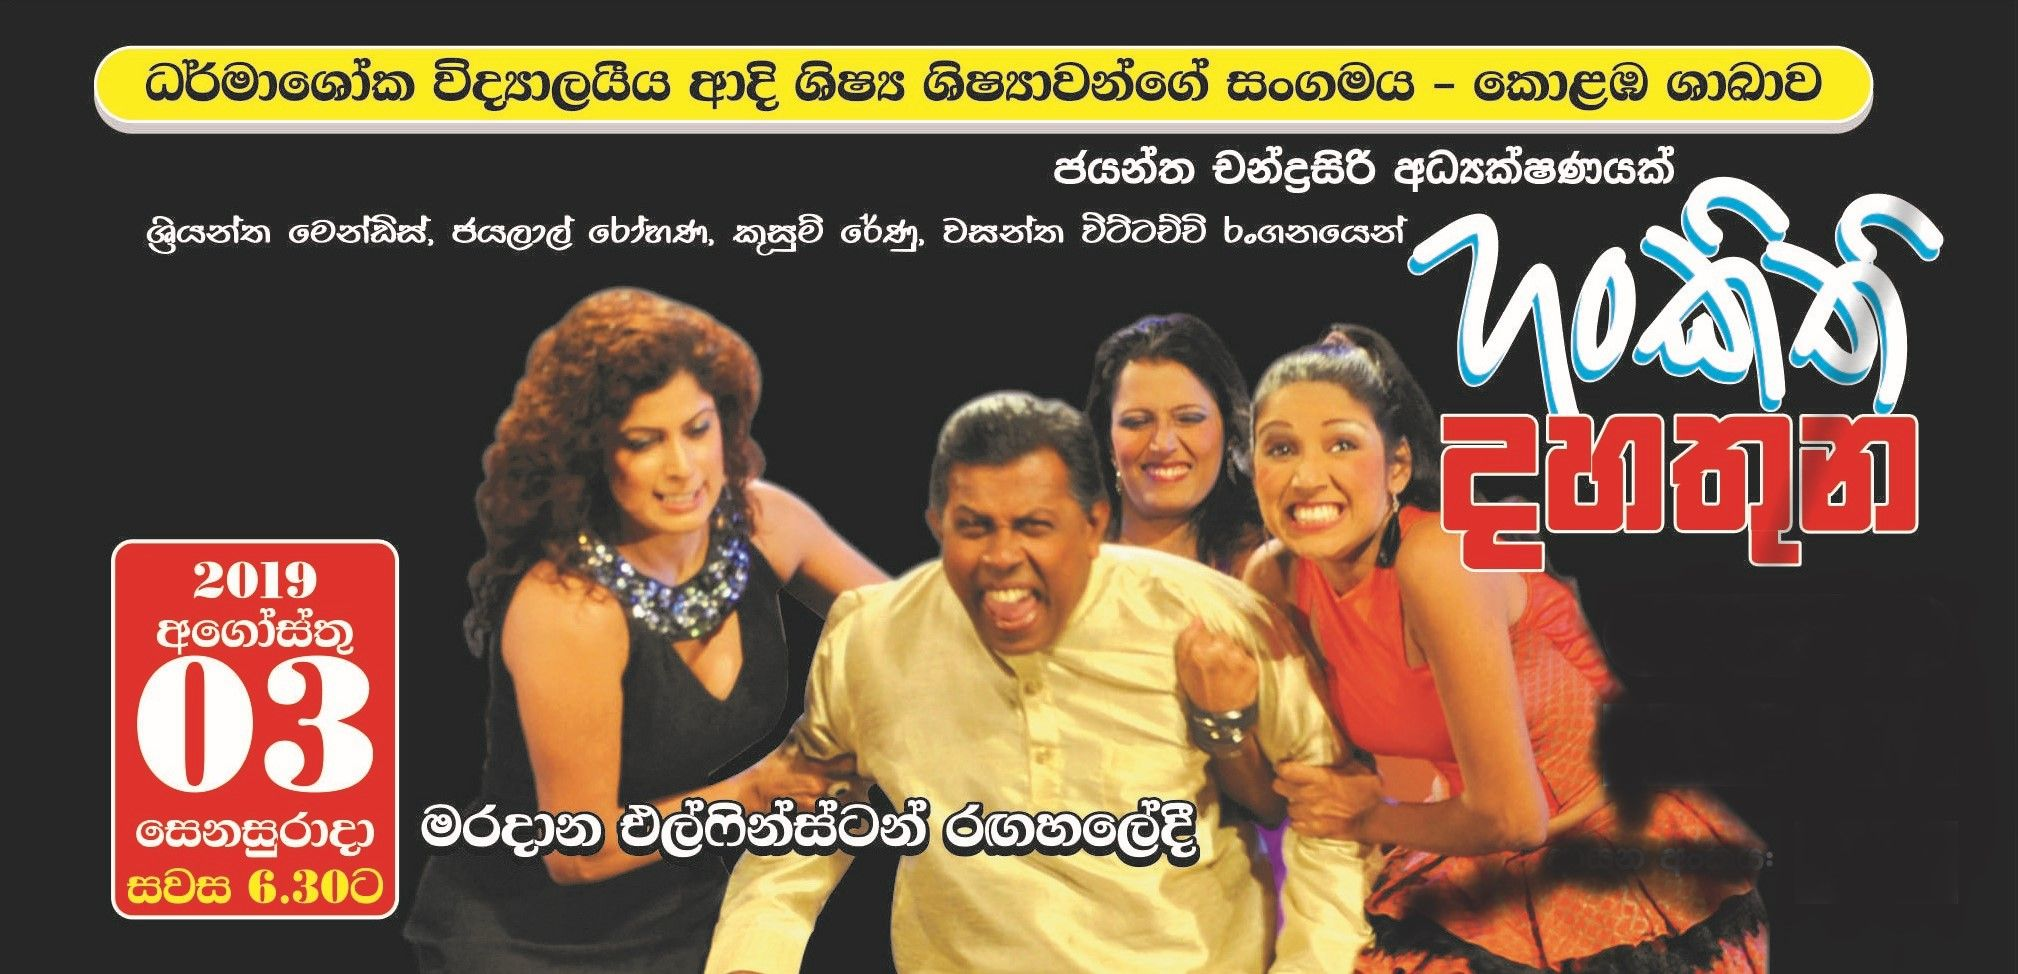 DCPPA Colombo Br Stage Show